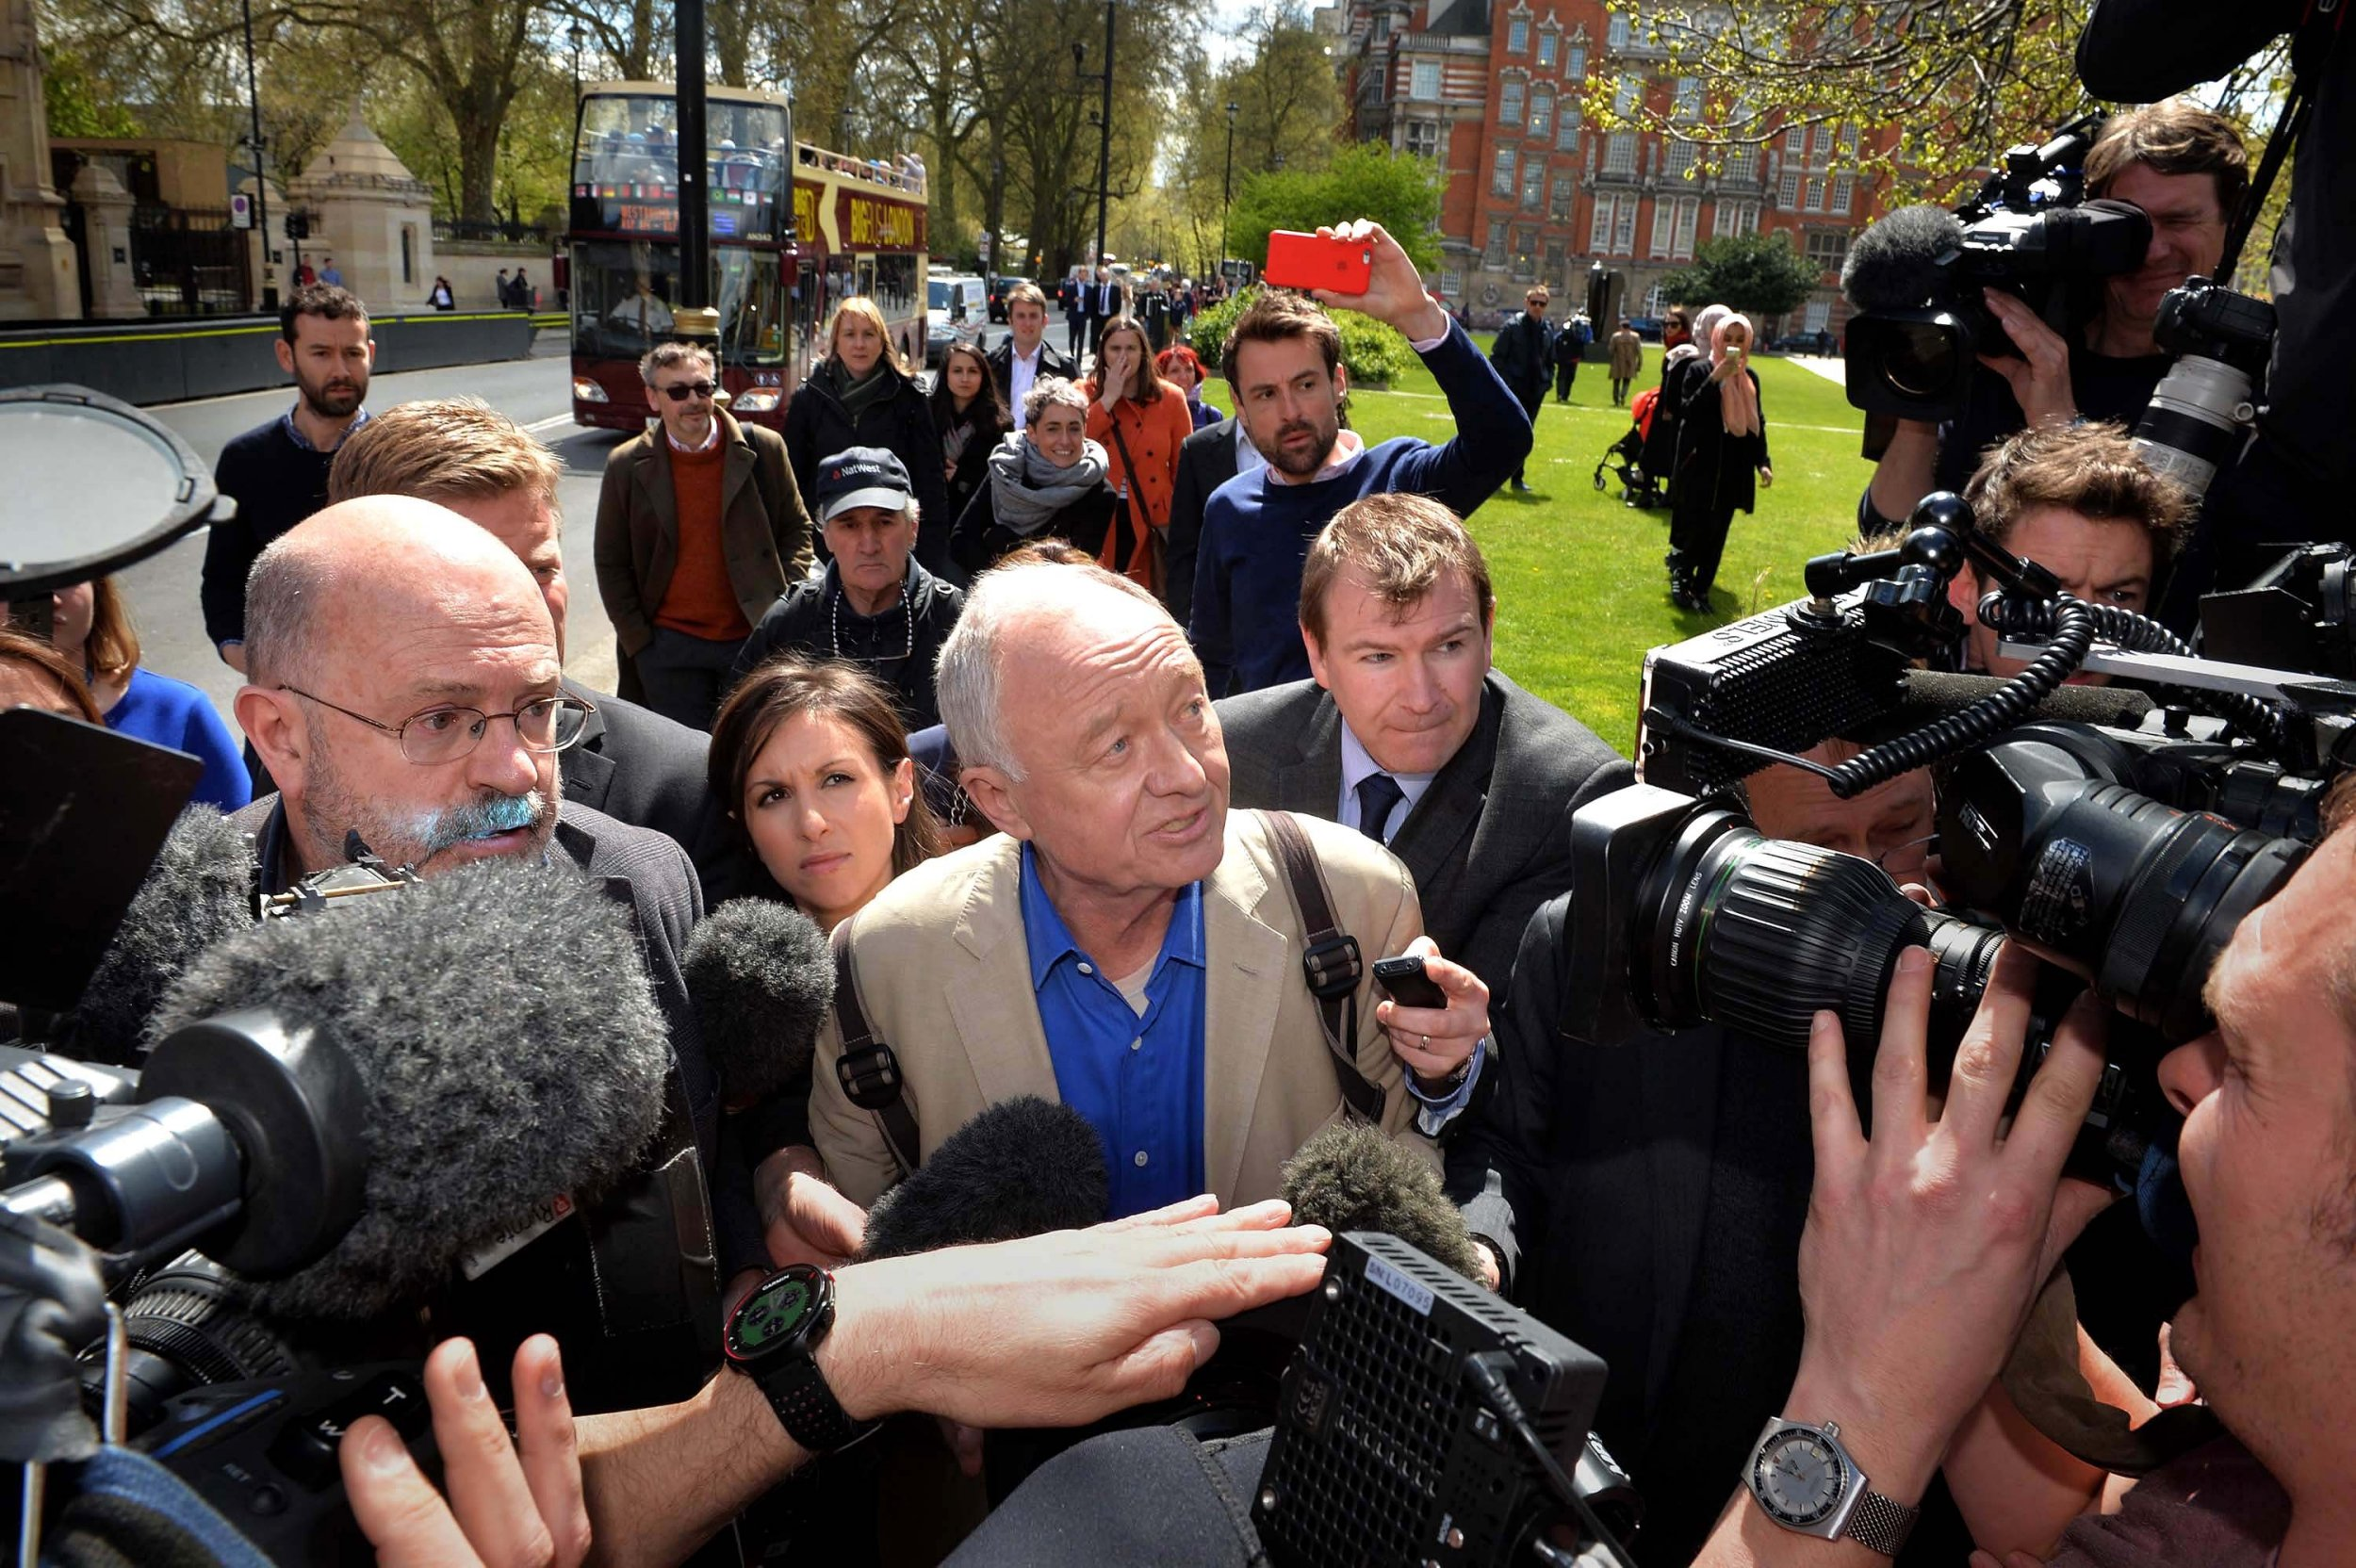 Ken Livingstone suspended from Labour following Hitler comments